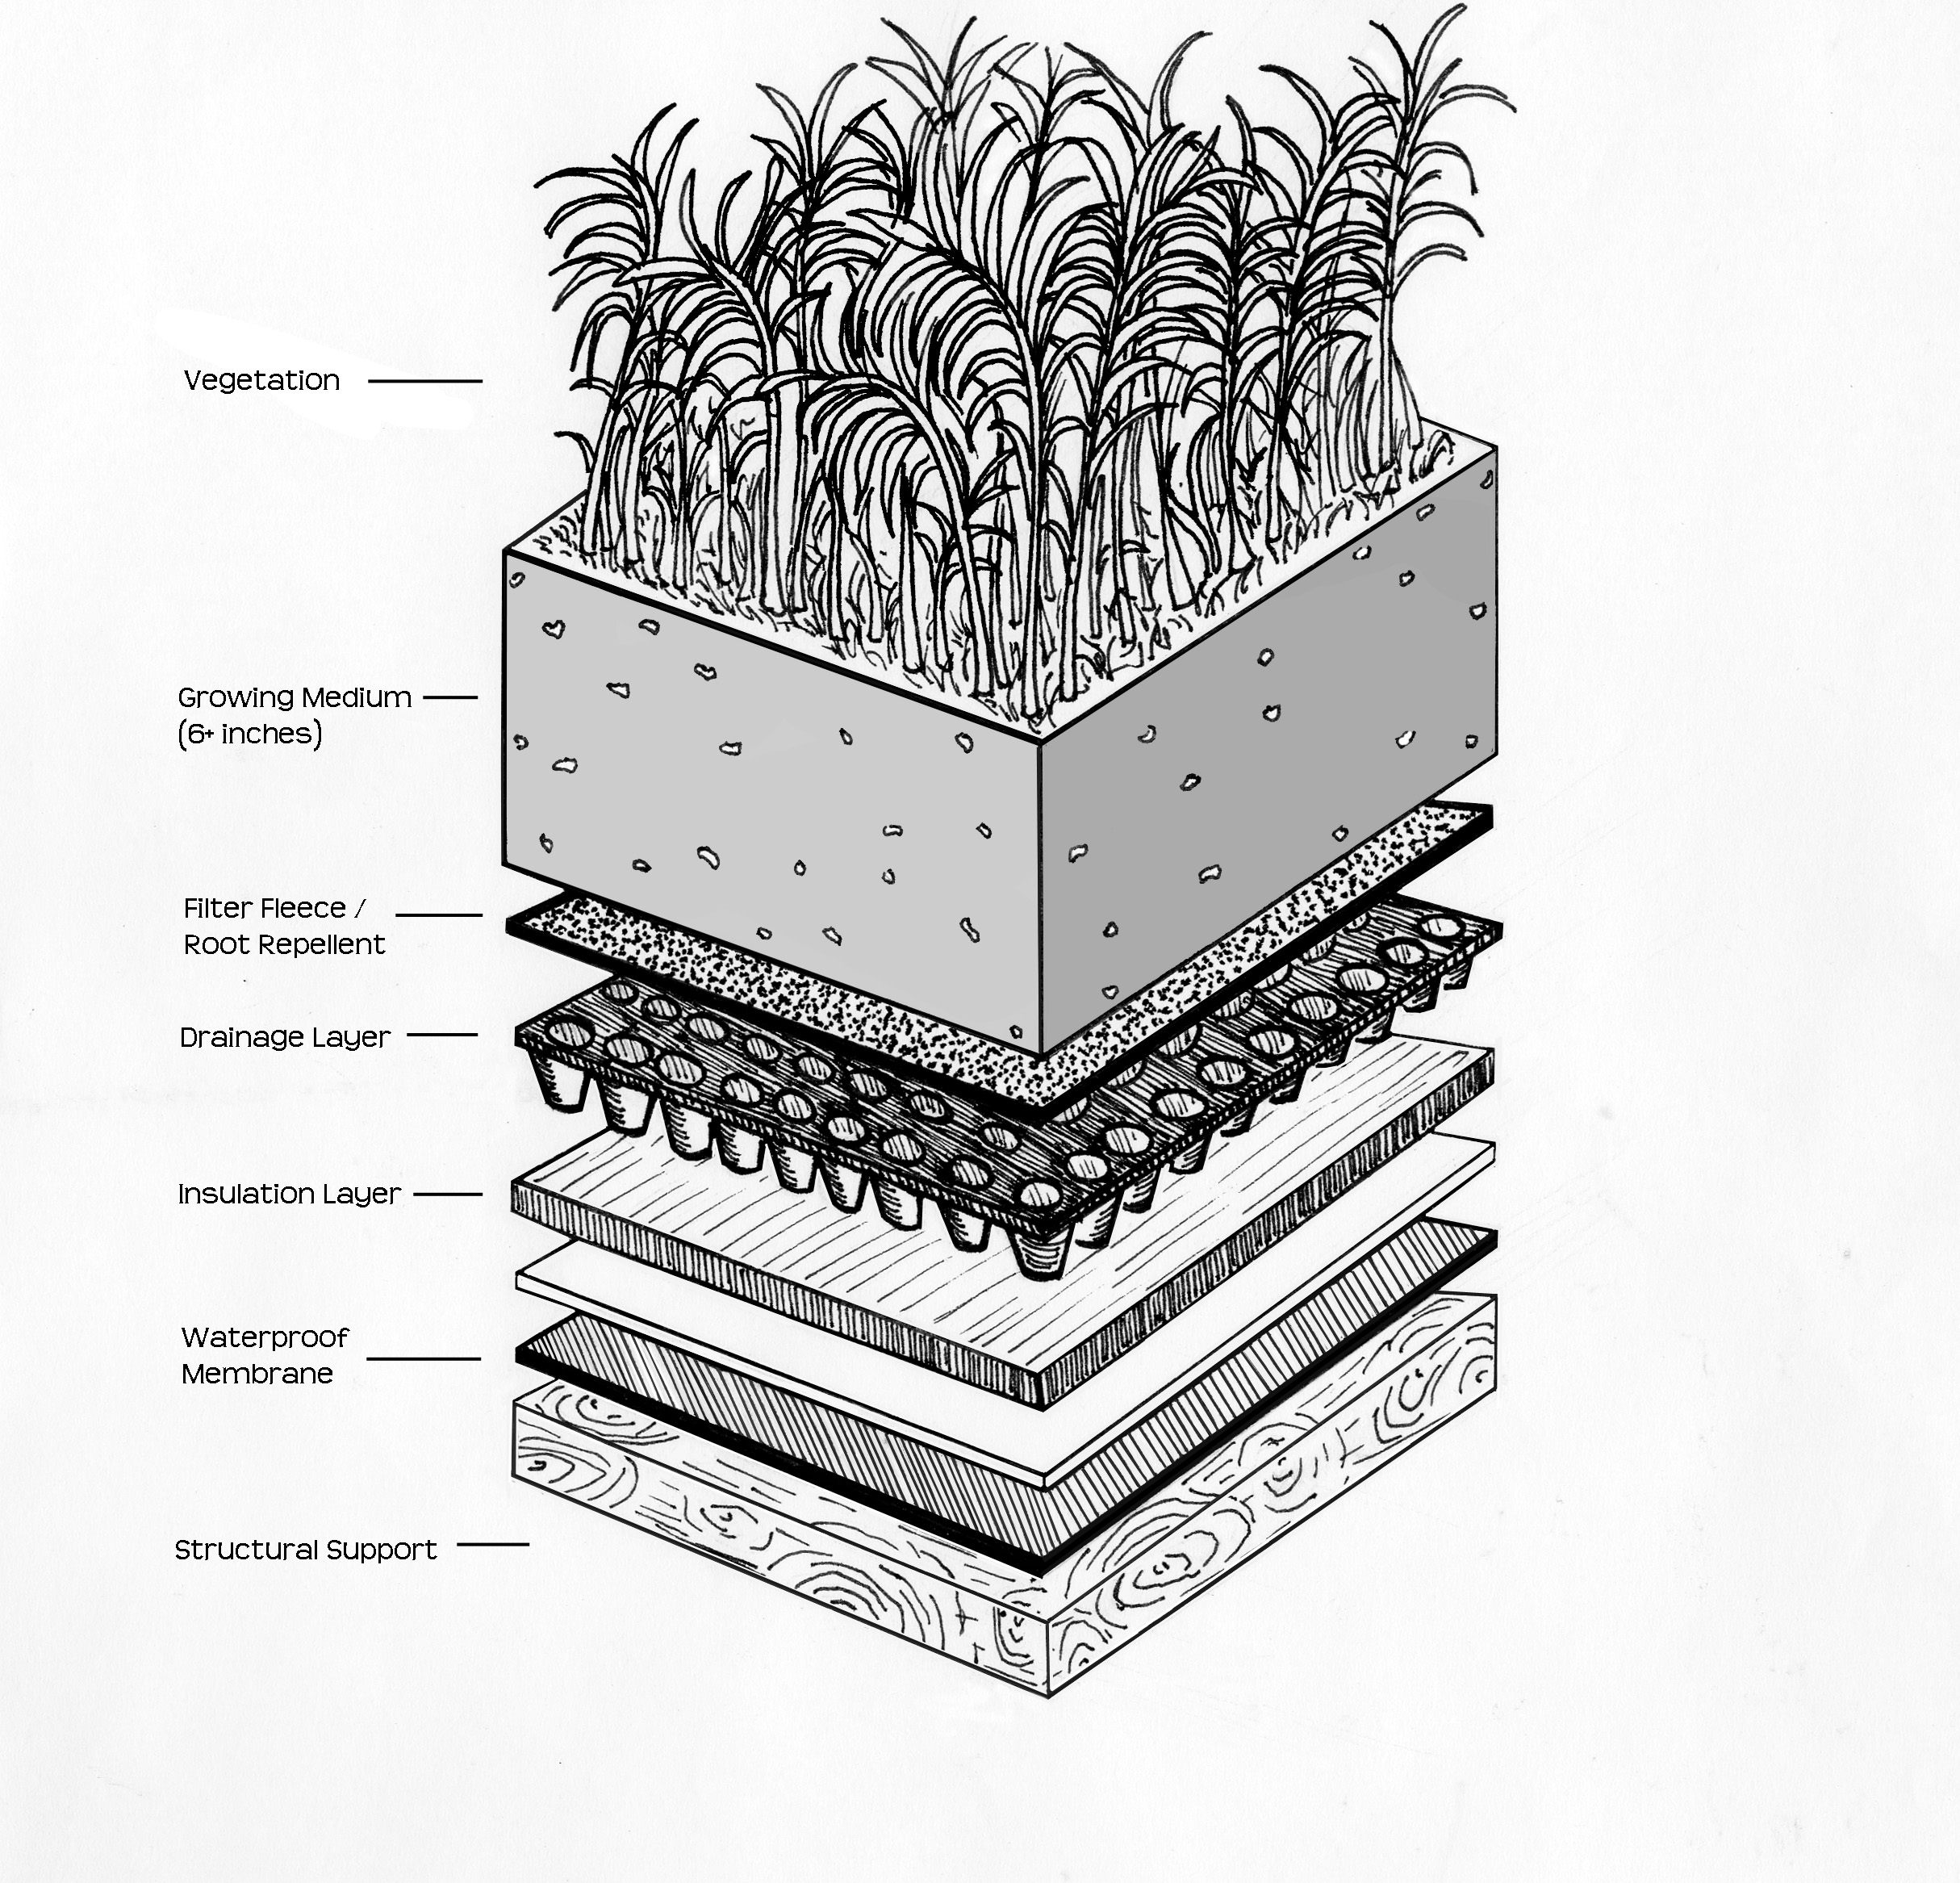 green roof water runoff diagram 99 cherokee stereo wiring intensive vs extensive roofs whats the difference